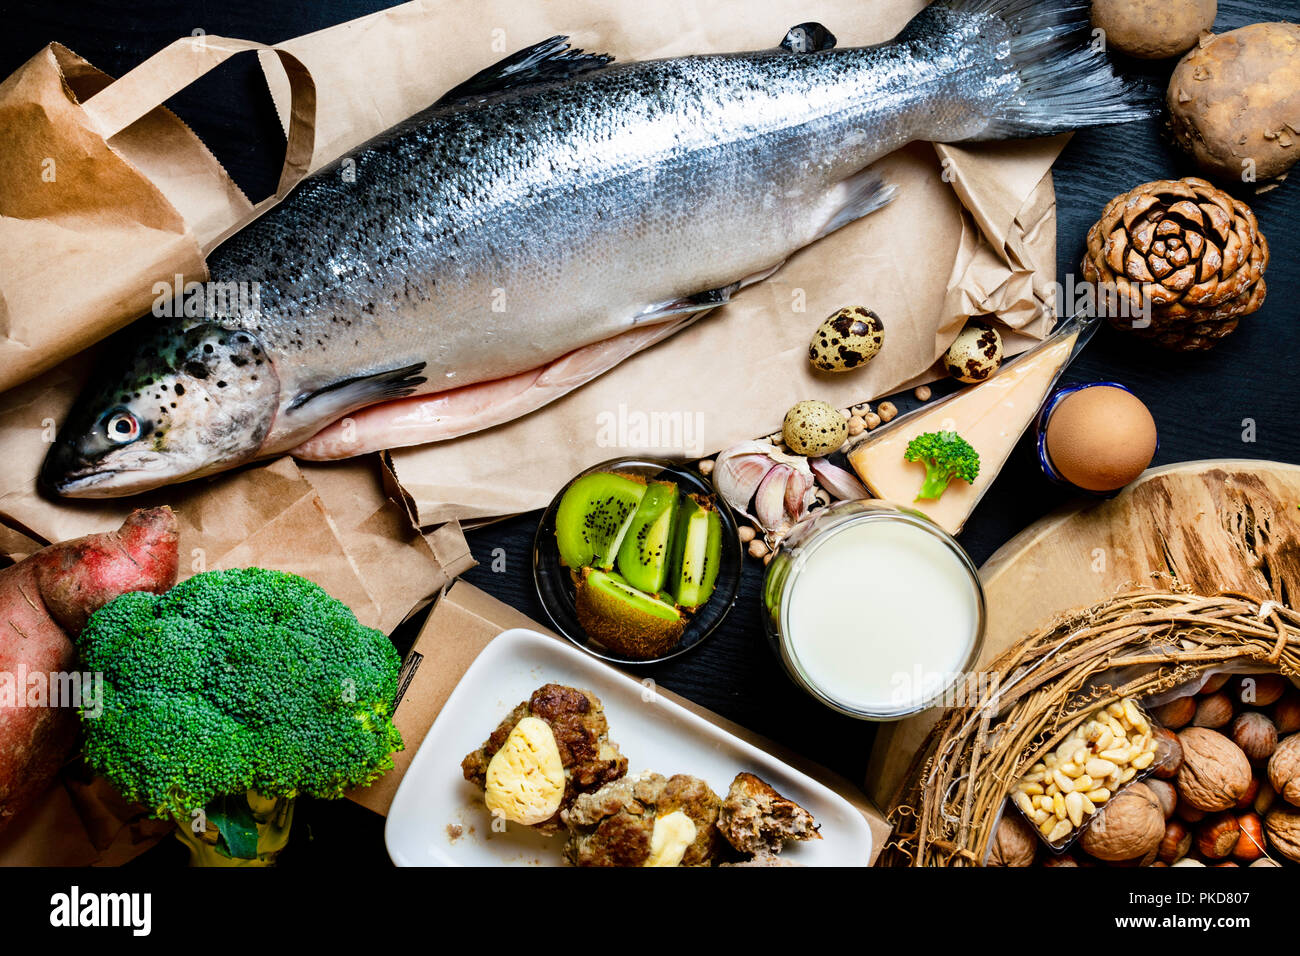 Products containing phosphorus salmon fish, pine nuts, peanuts, anchovy, cheese, milk, eggs, broccoli, kiwi, potatoes, meat, beans garlic on a round cutting board and black wooden background - Stock Image